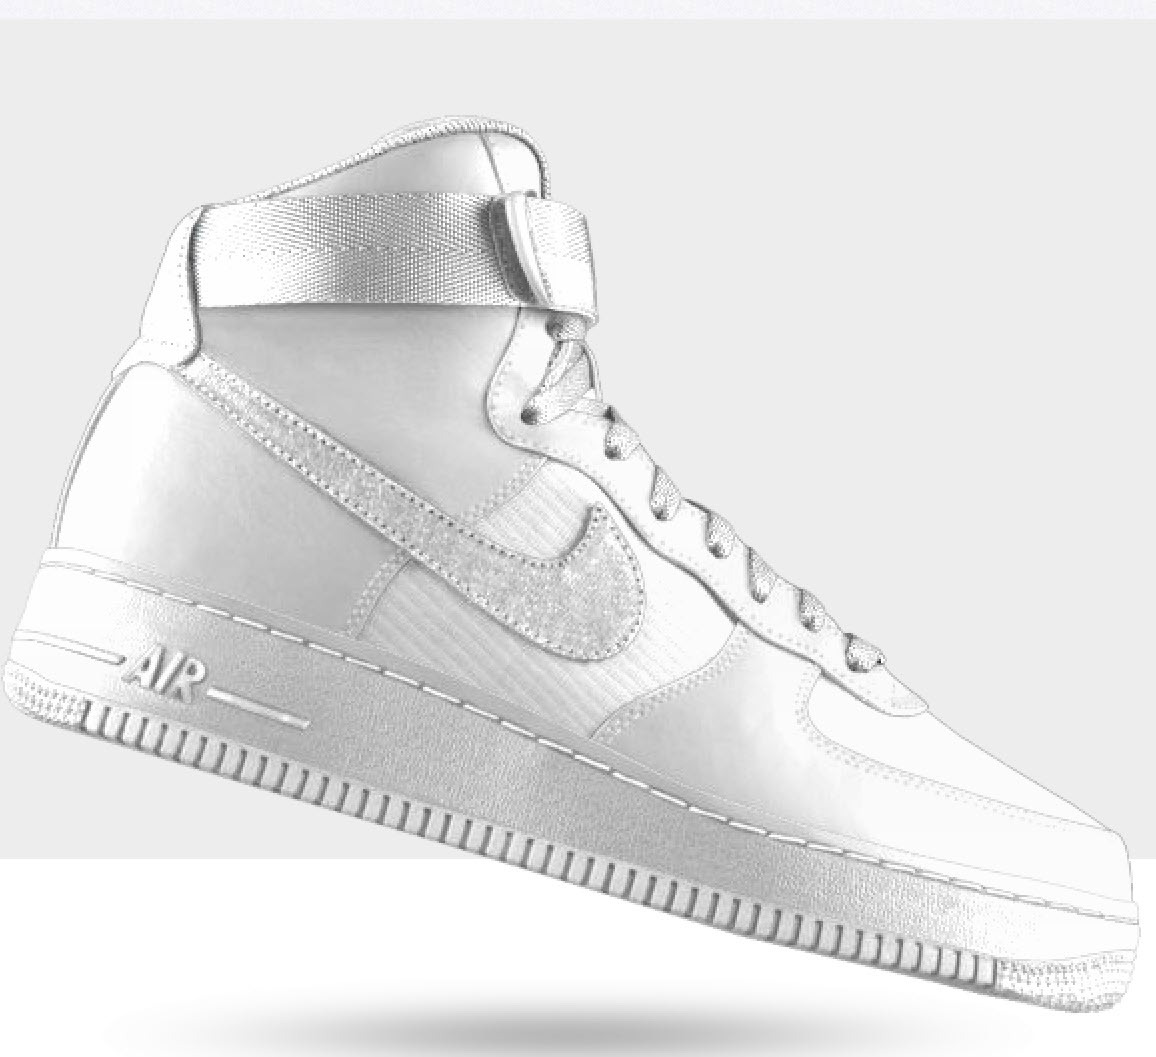 Vita egendesign av customfoo.se Vita Air force one från Nike.